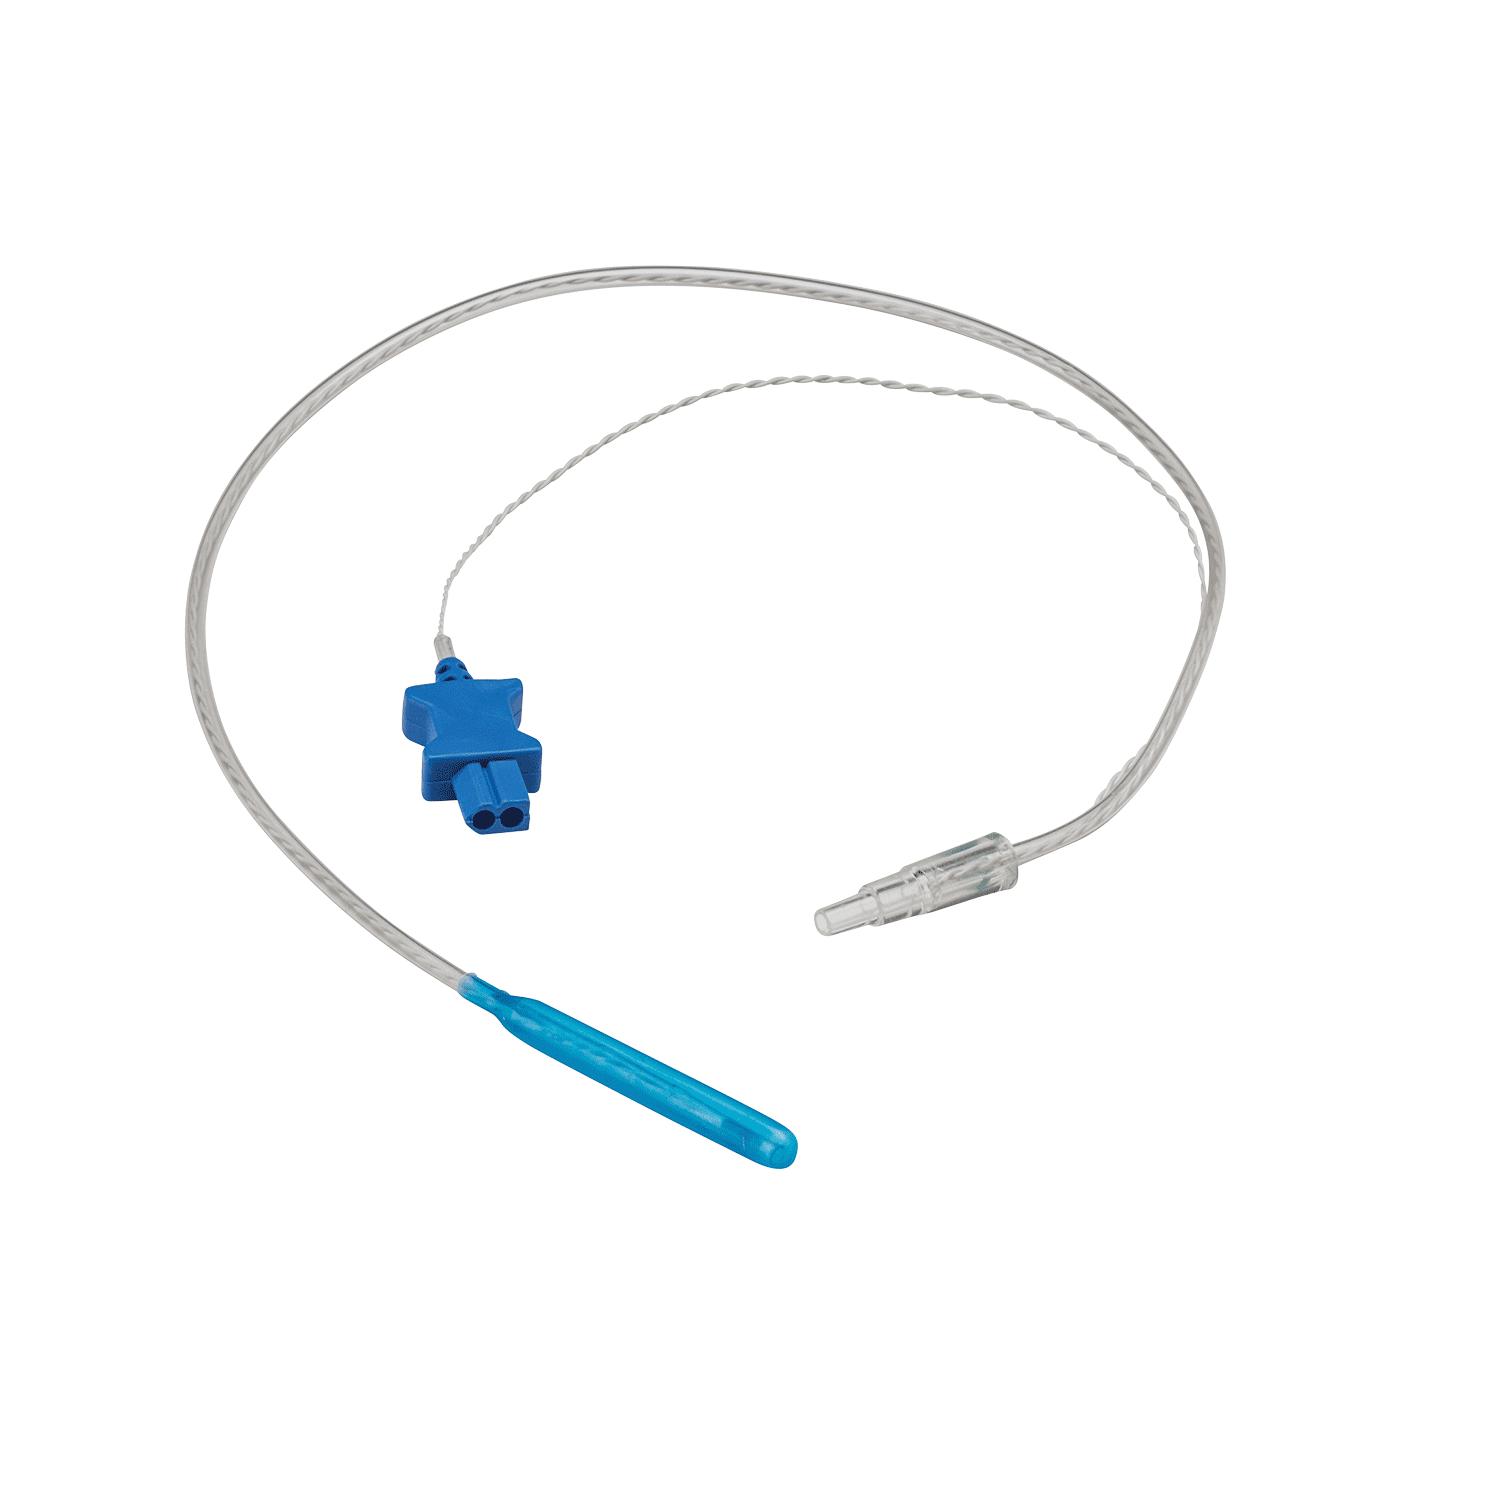 Esophageal Stethoscopes With Temperature Sterile And Nonsterile Genesis Medical Corporation